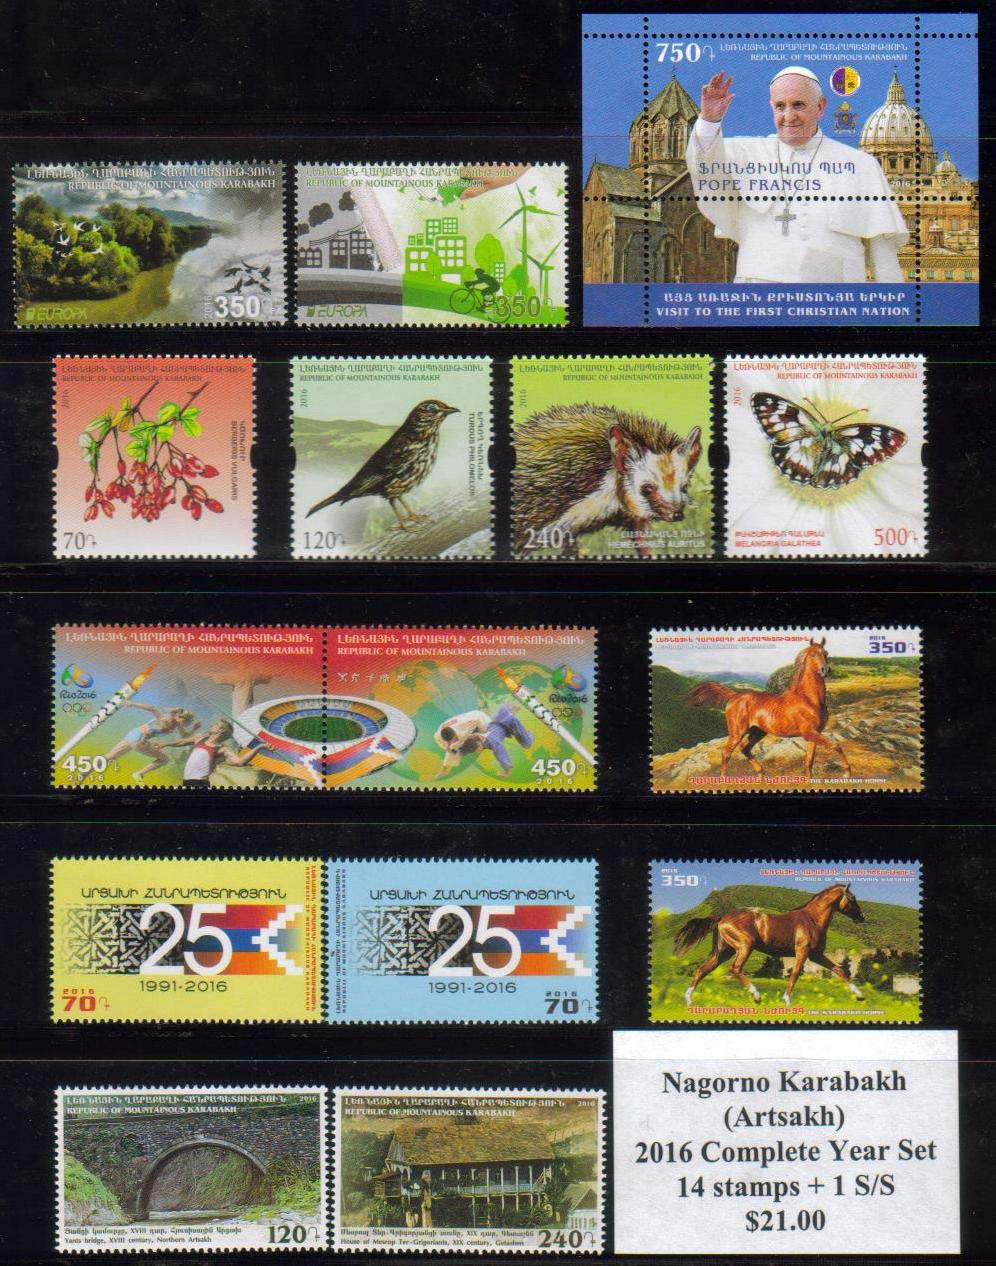 <Font 0-year-2016><br><font color=red><b>Nagorno Karabakh 2016 Complete Year set</font></b><br>14 stamps and one Souvenir Sheet<br><a href=&quot;/images/KA-2016-Year.jpg&quot;>   <font color=green><b>View the image</b></a></font><br>